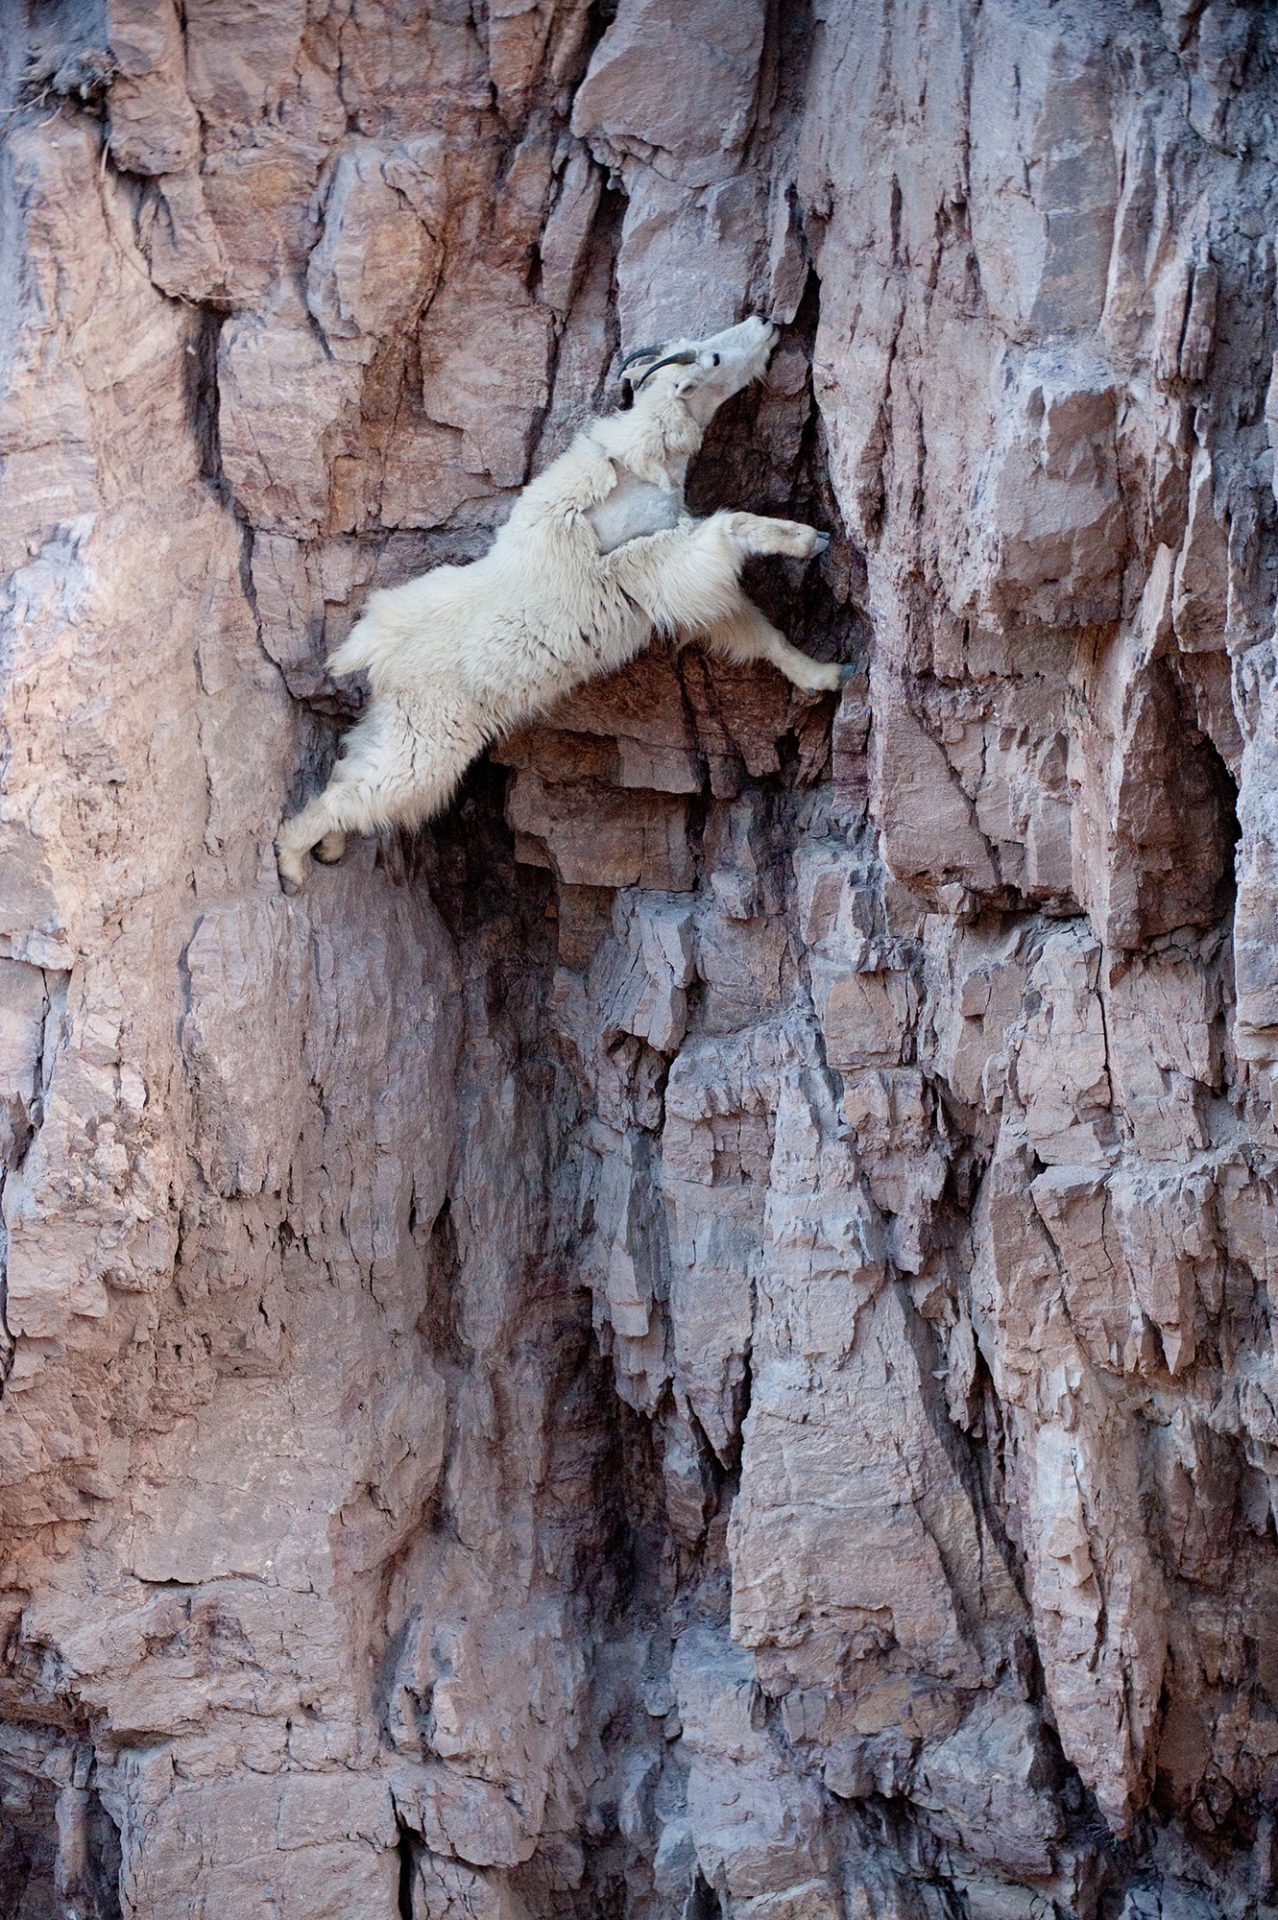 A mountain goat (Oreamnos americanus) stretches to reach a mineral lick in the Walton area of Glacier National Park in Montana.